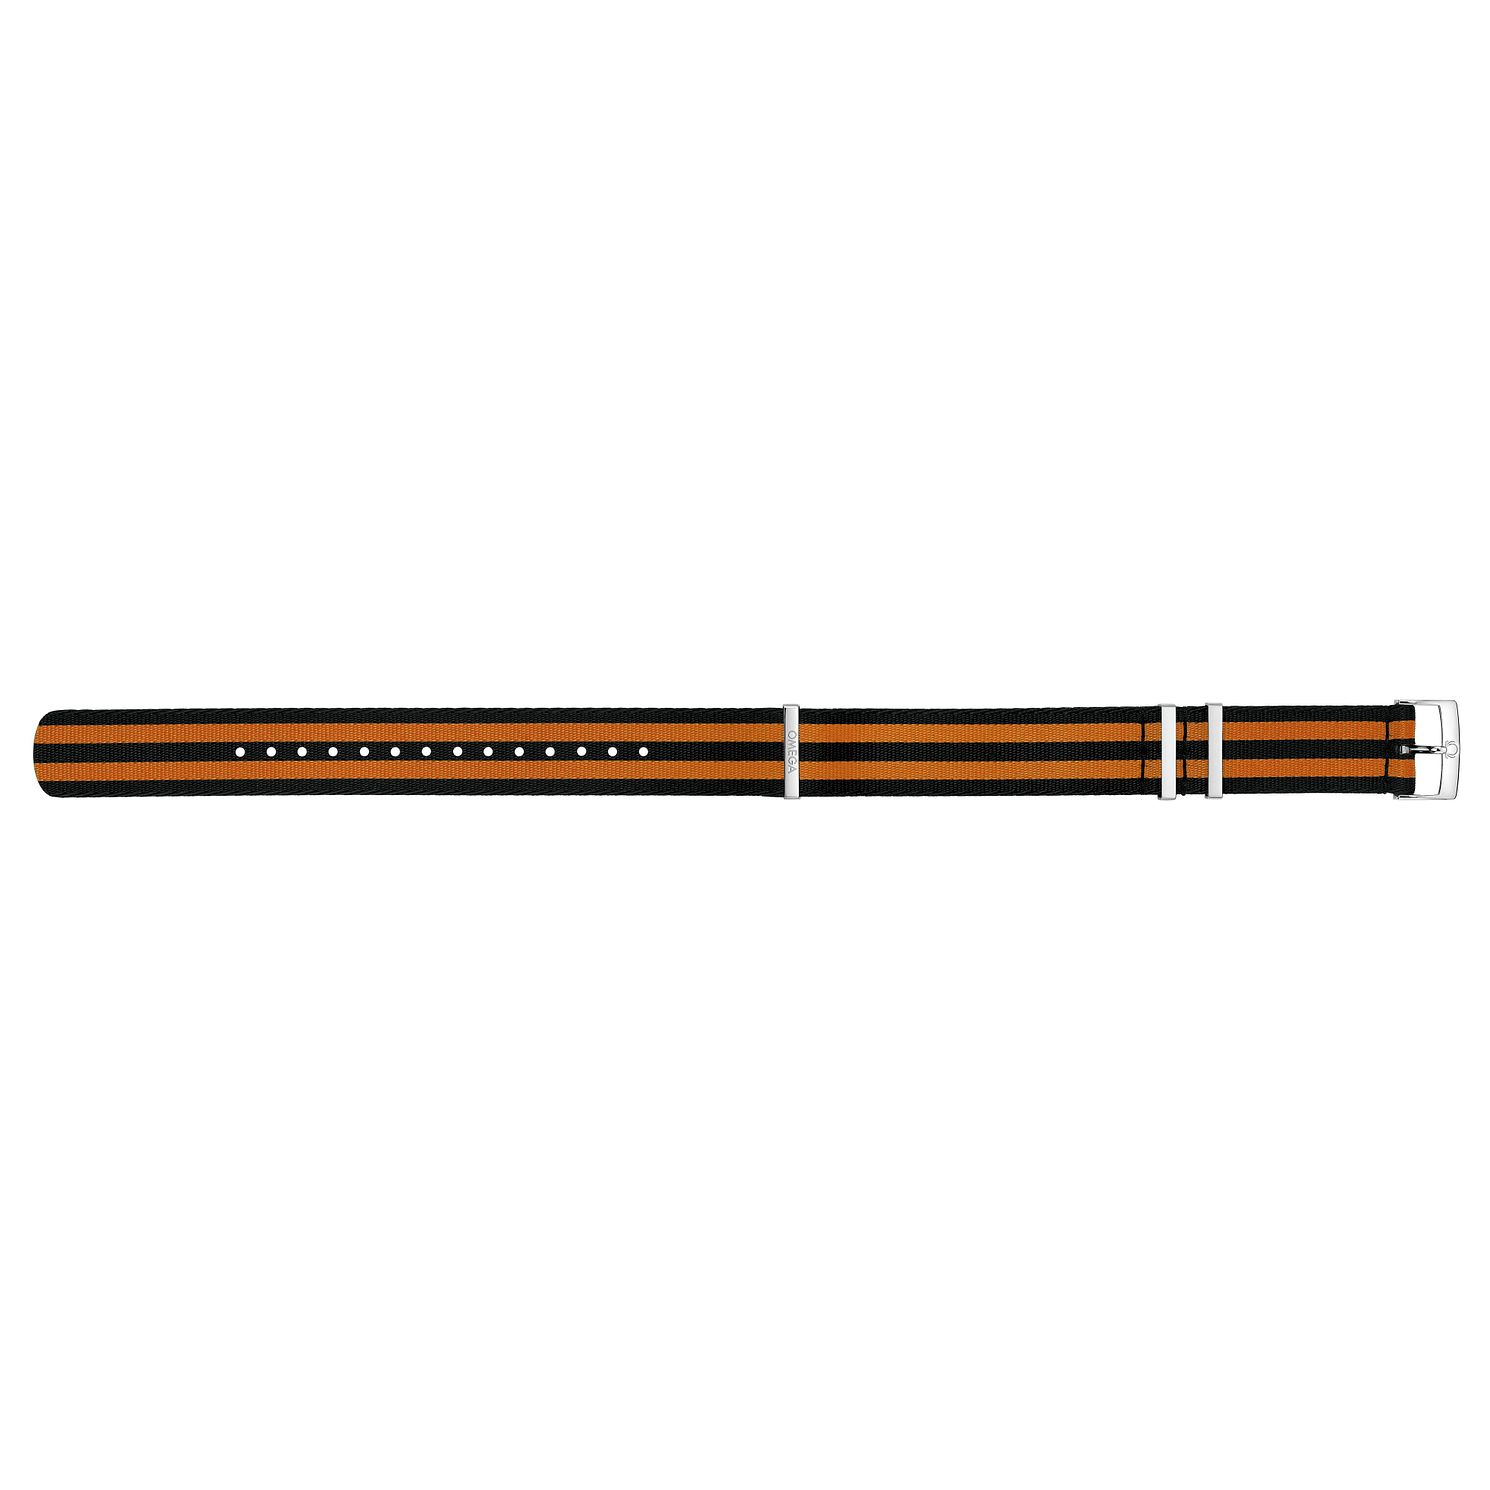 Omega Nato Black & Orange Striped Nylon Strap 22mm - Product number 1064487